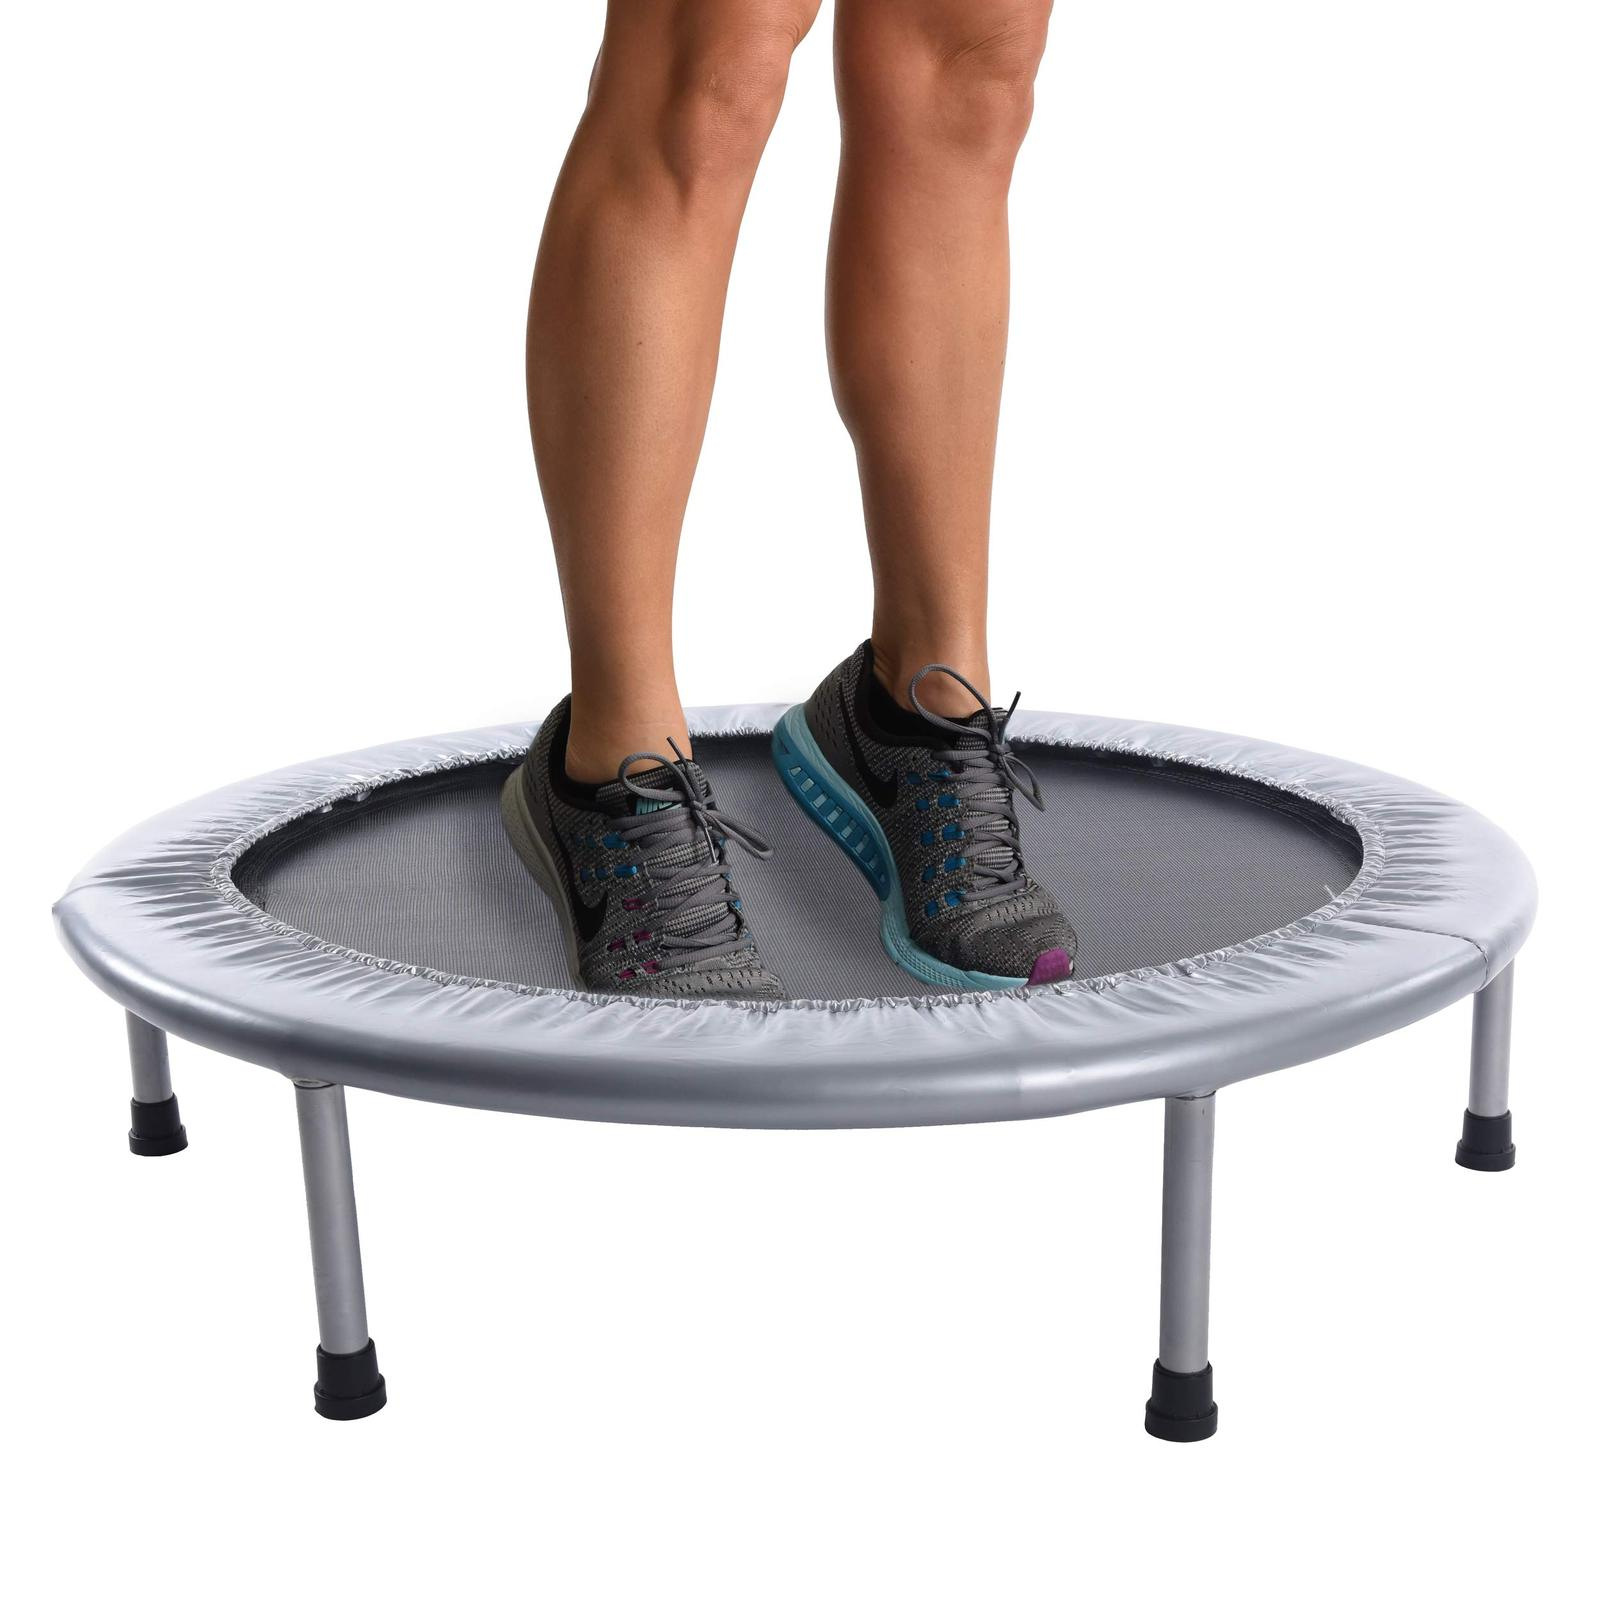 Trampoline Parts Center Coupon Code: Stamina 36-Inch Folding Trampoline